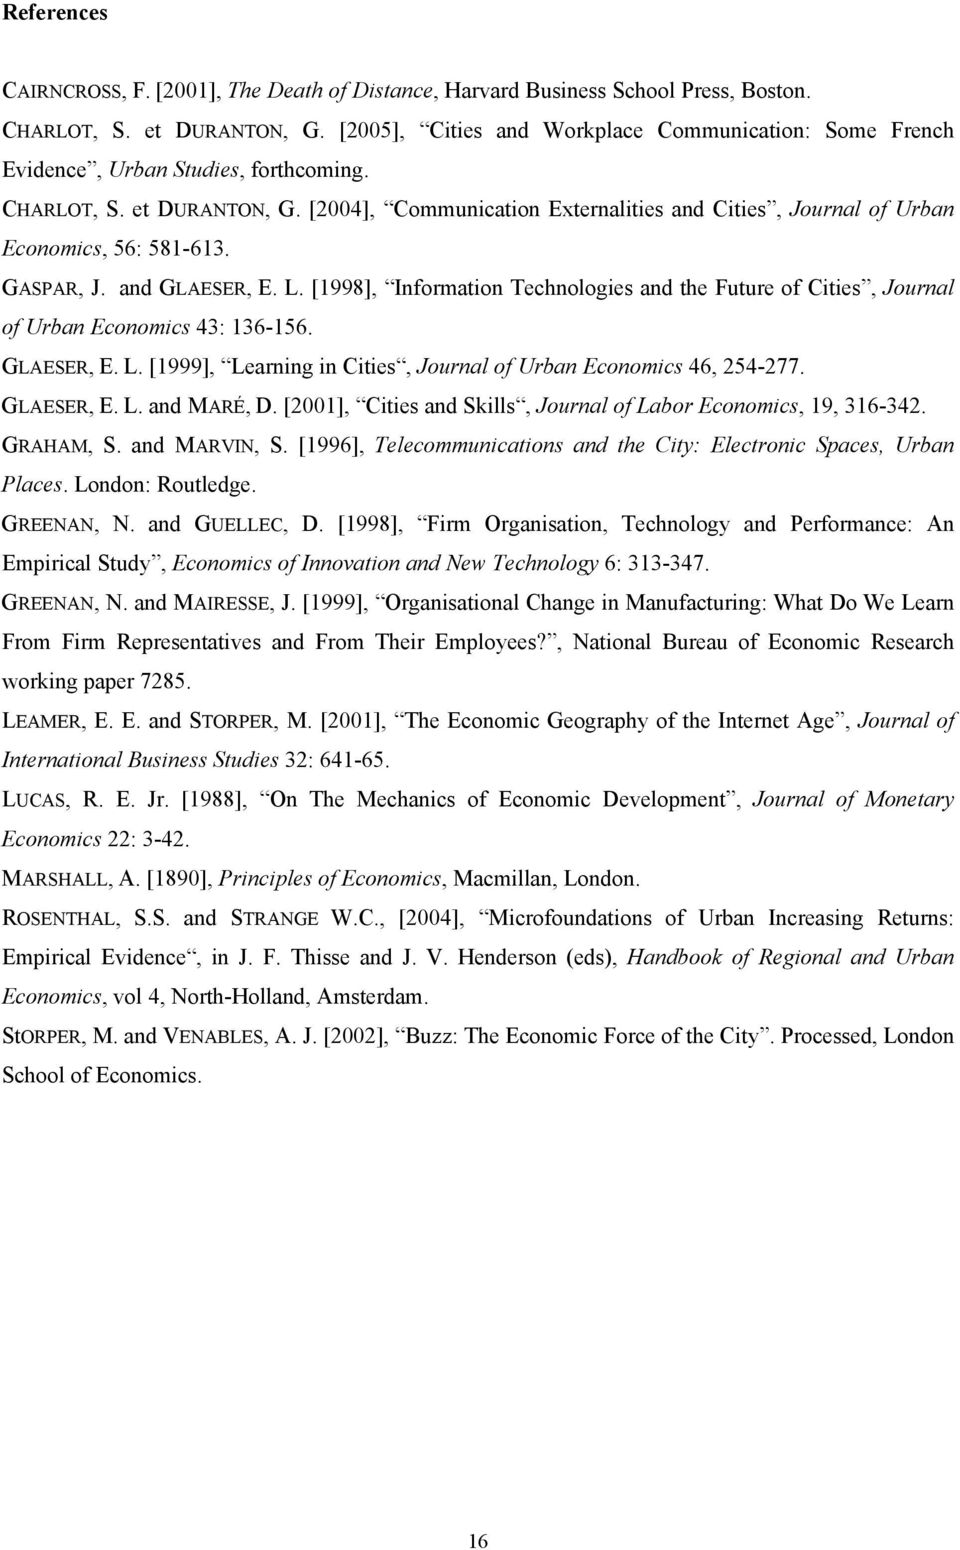 [2004], Communication Externalities and Cities, Journal of Urban Economics, 56: 581-613. GASPAR, J. and GLAESER, E. L.